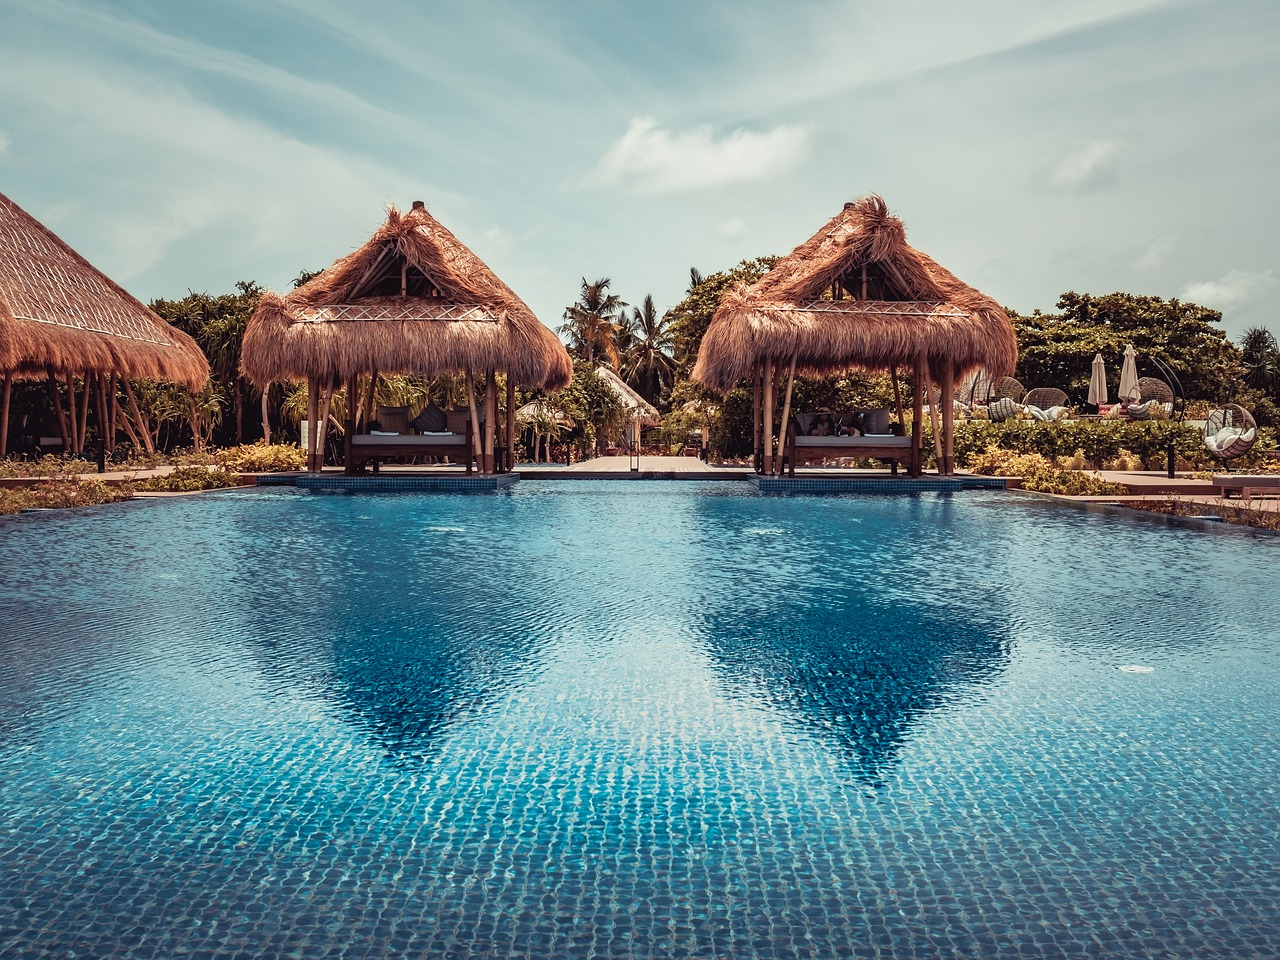 Homestays in the Maldives